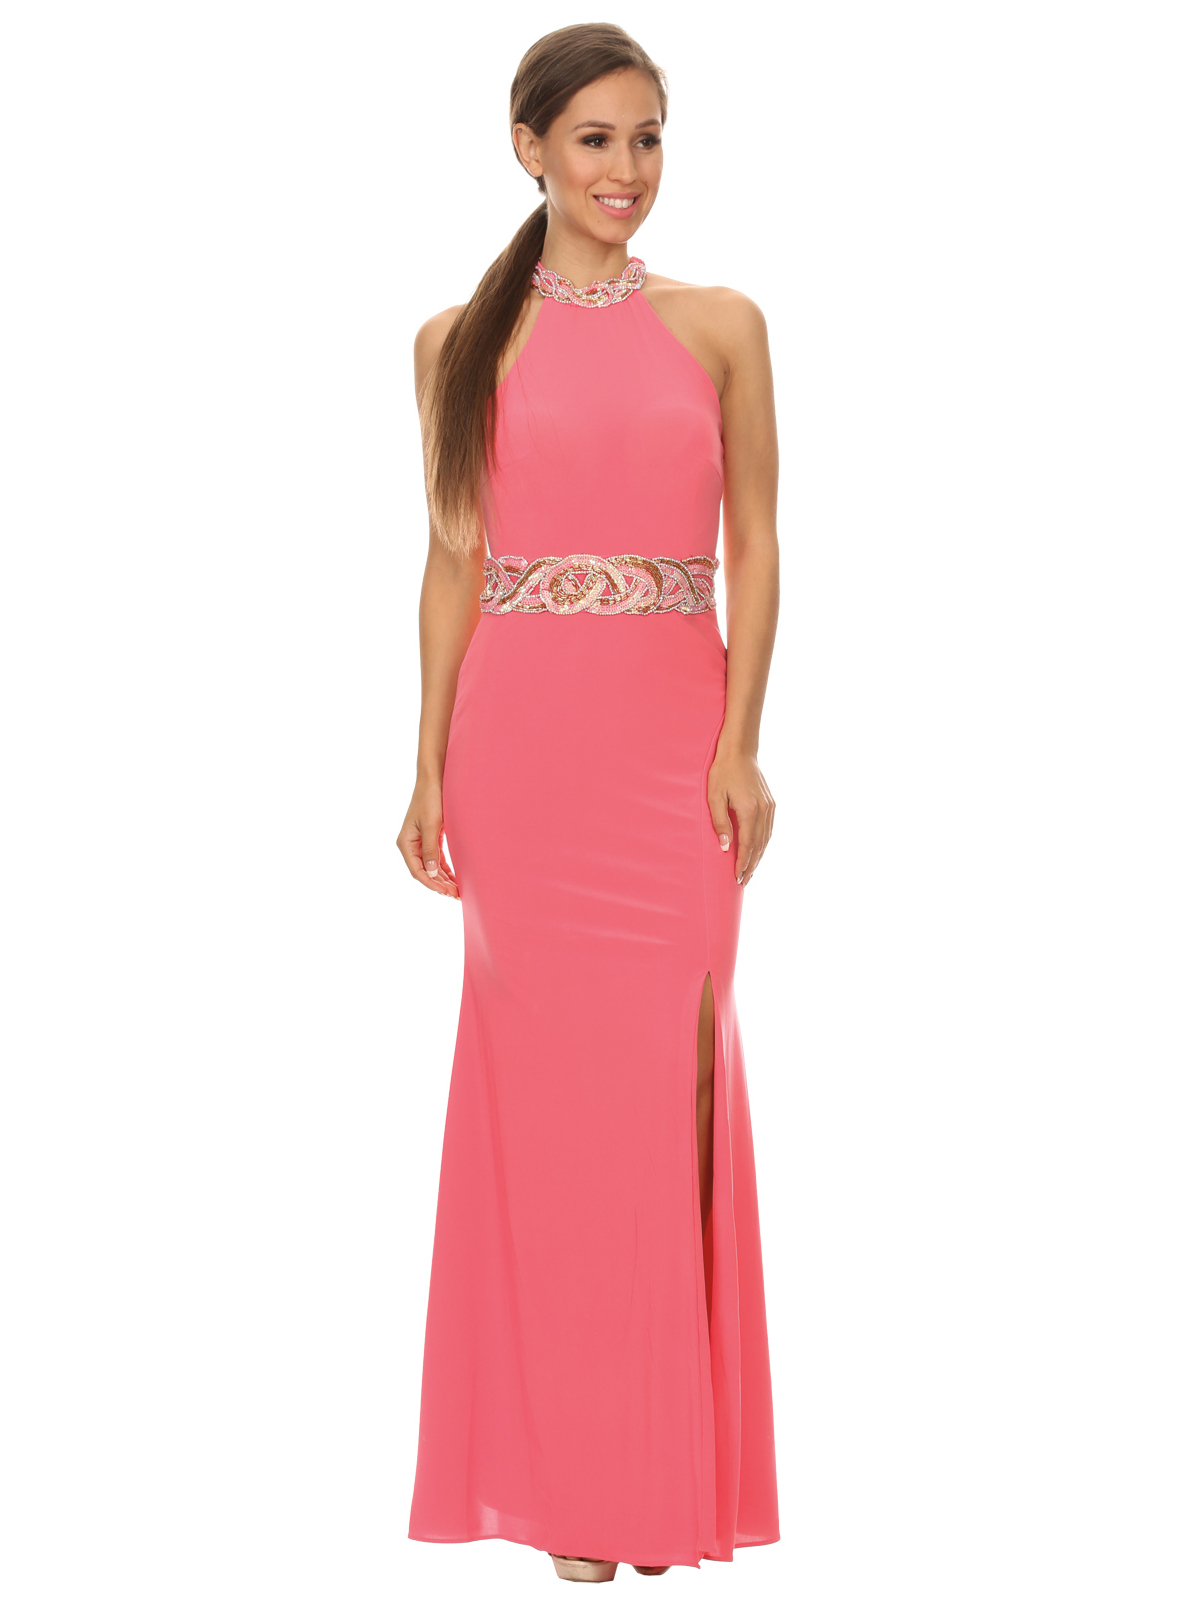 High Neck Prom Evening Dress With Slit Sung Boutique L A